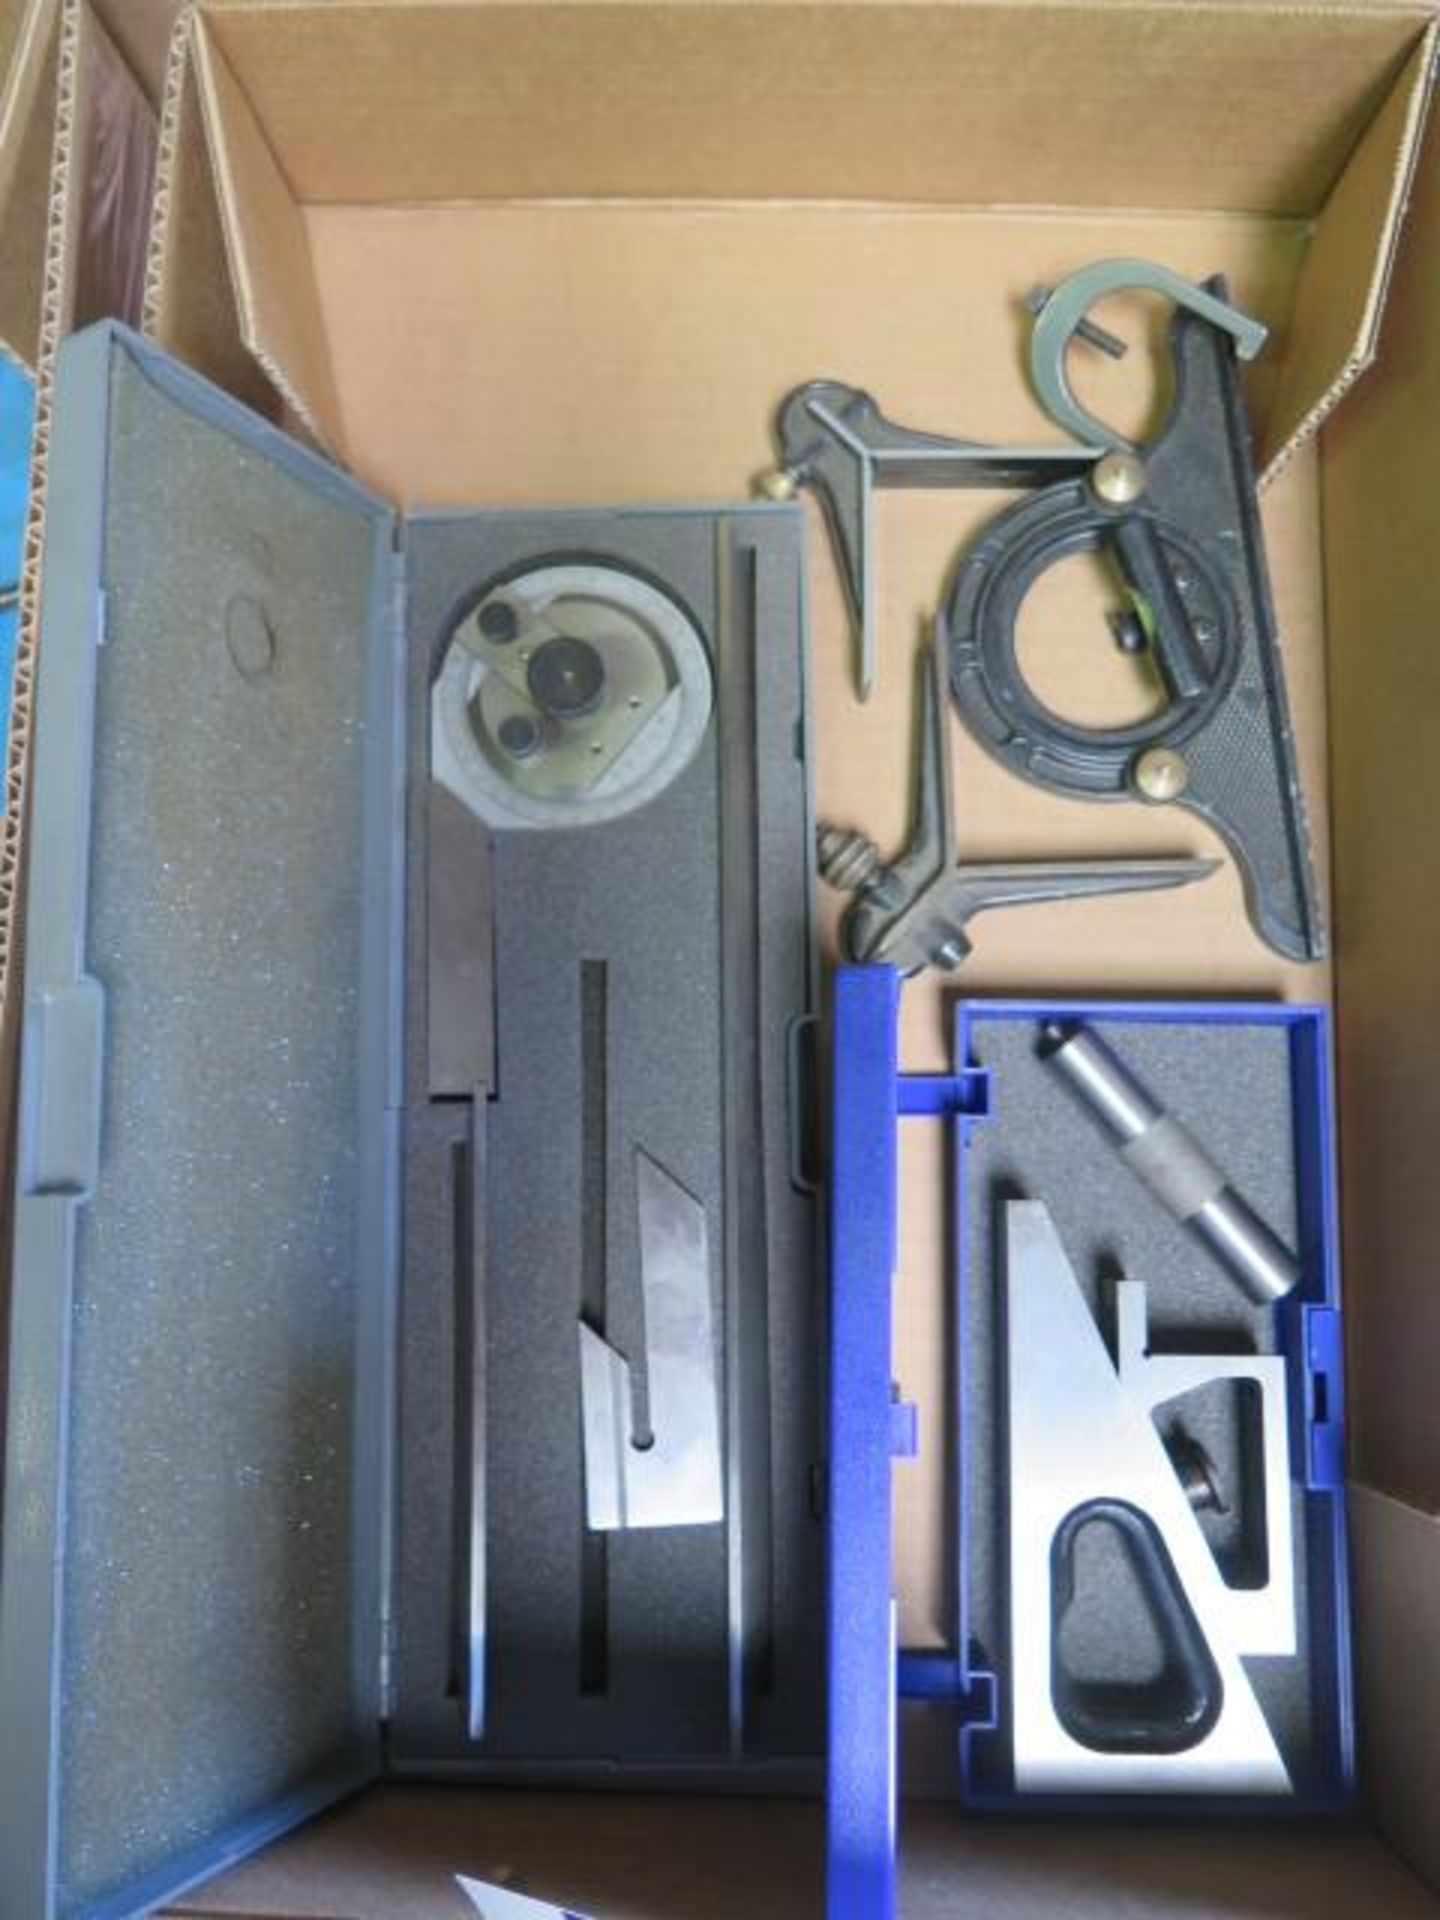 Lot 165 - Planer Gage and Protractors (SOLD AS-IS - NO WARRANTY)